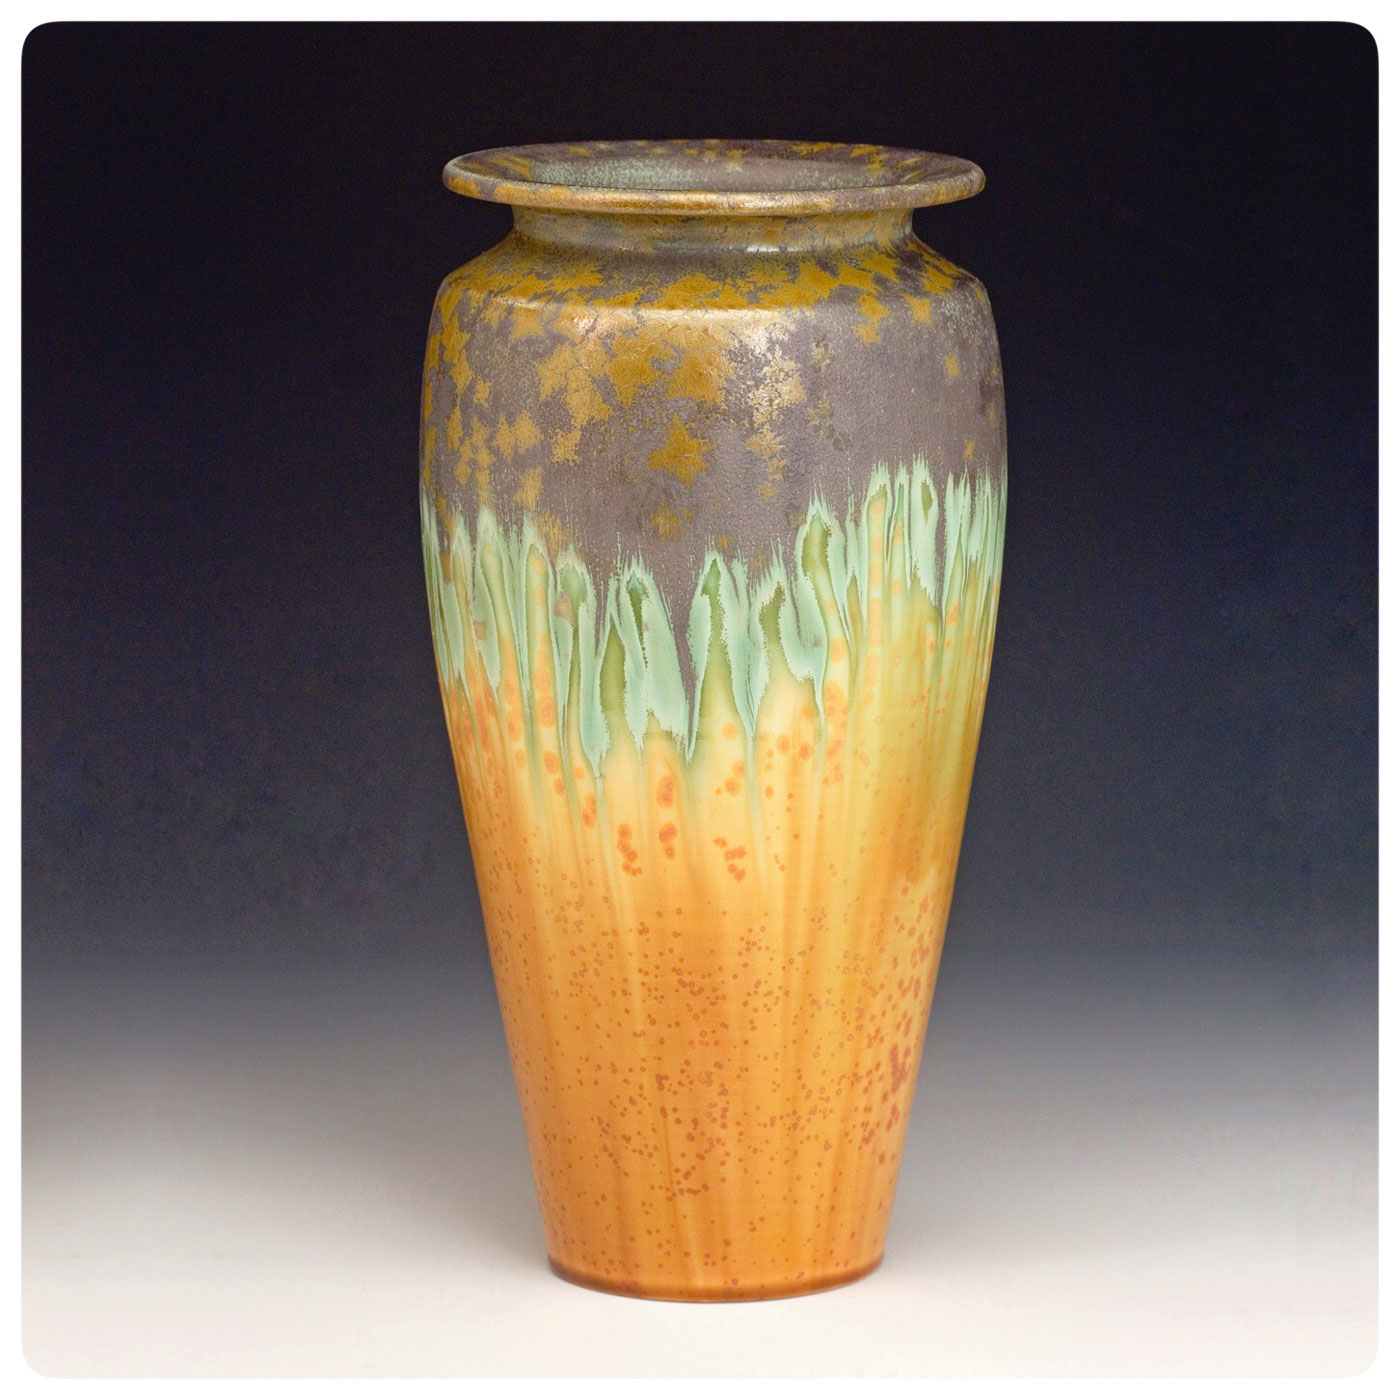 Art Pottery Crystalline Vase made by Bruce Gholson, Bulldog Pottery, Seagrove, North Carolina